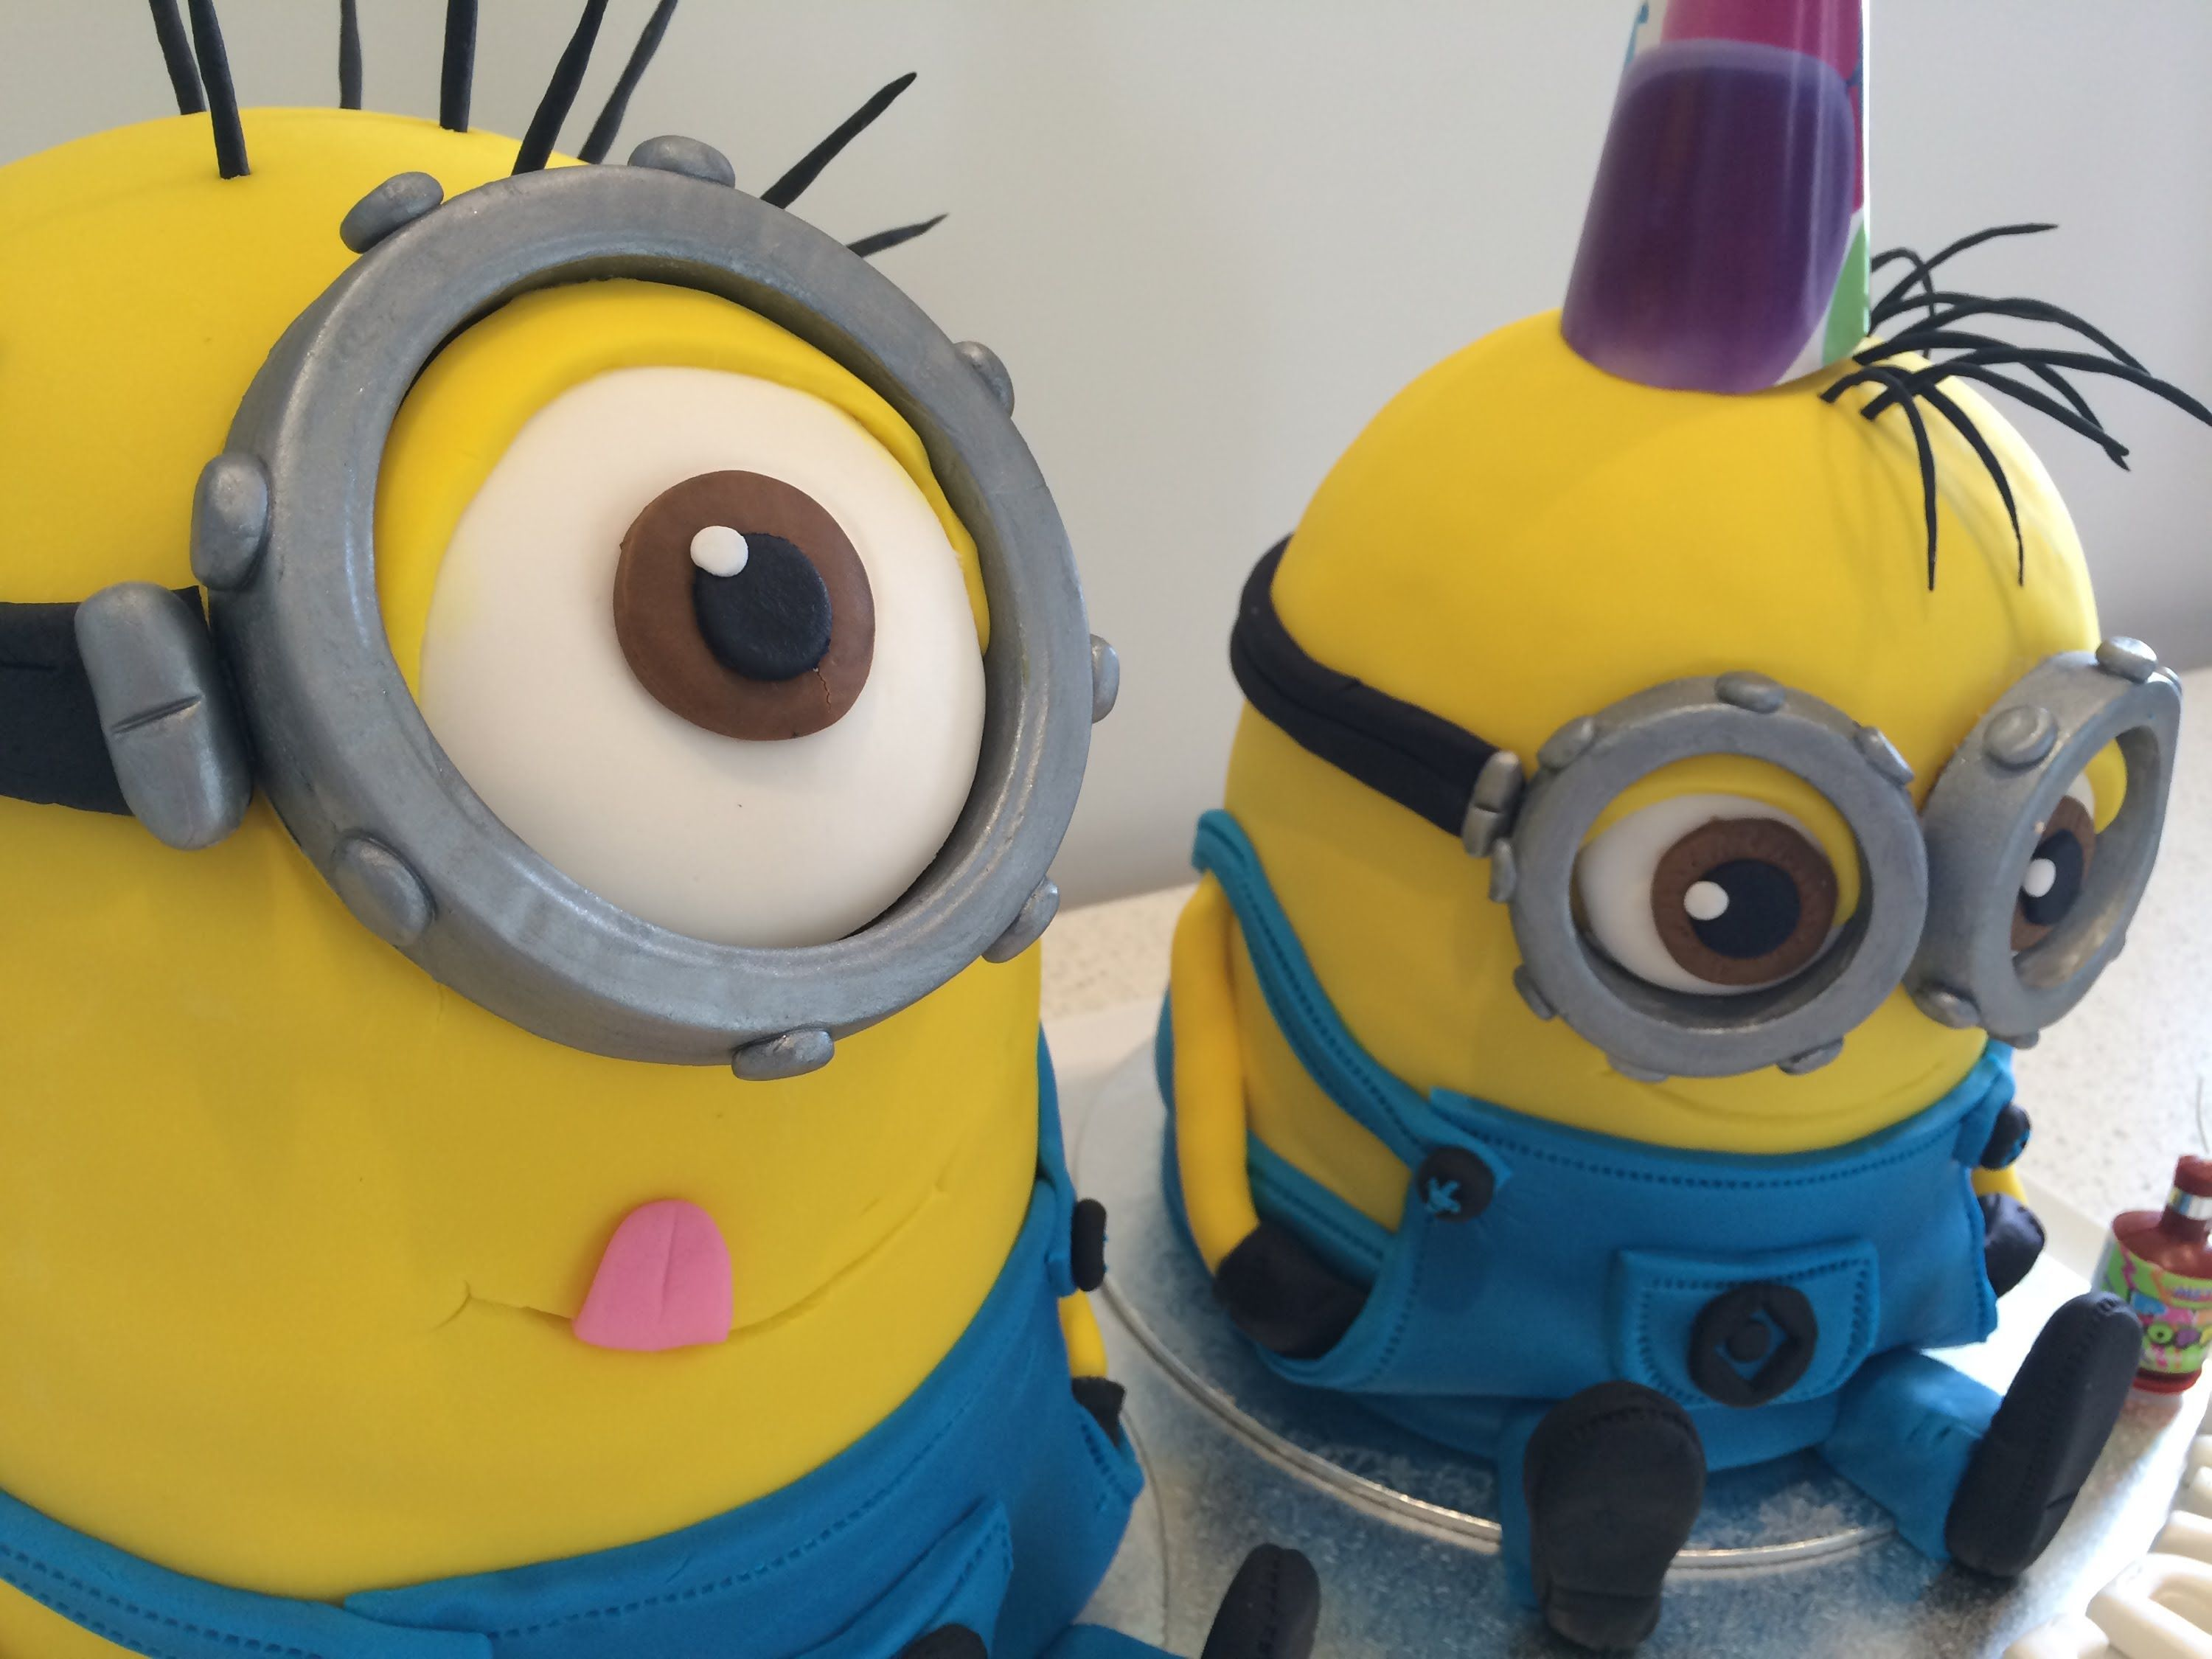 How to make a Despicable Me 2 Minion Cake step by step tutorial ~ Part 2